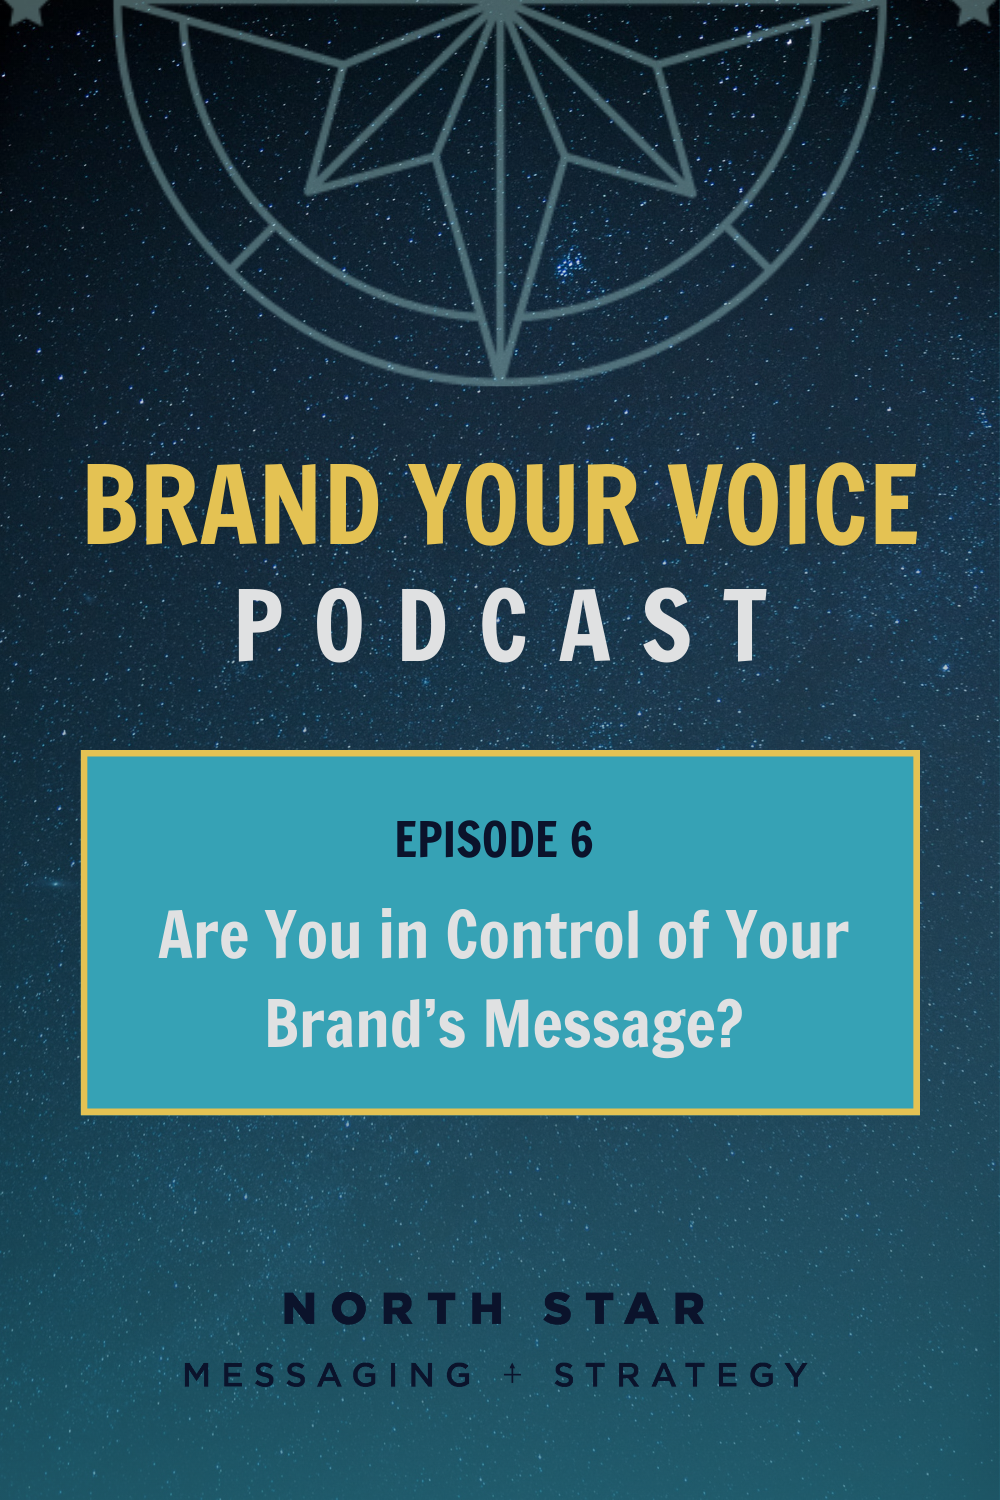 EPISODE 6: Are You in Control of Your Brand's Message?